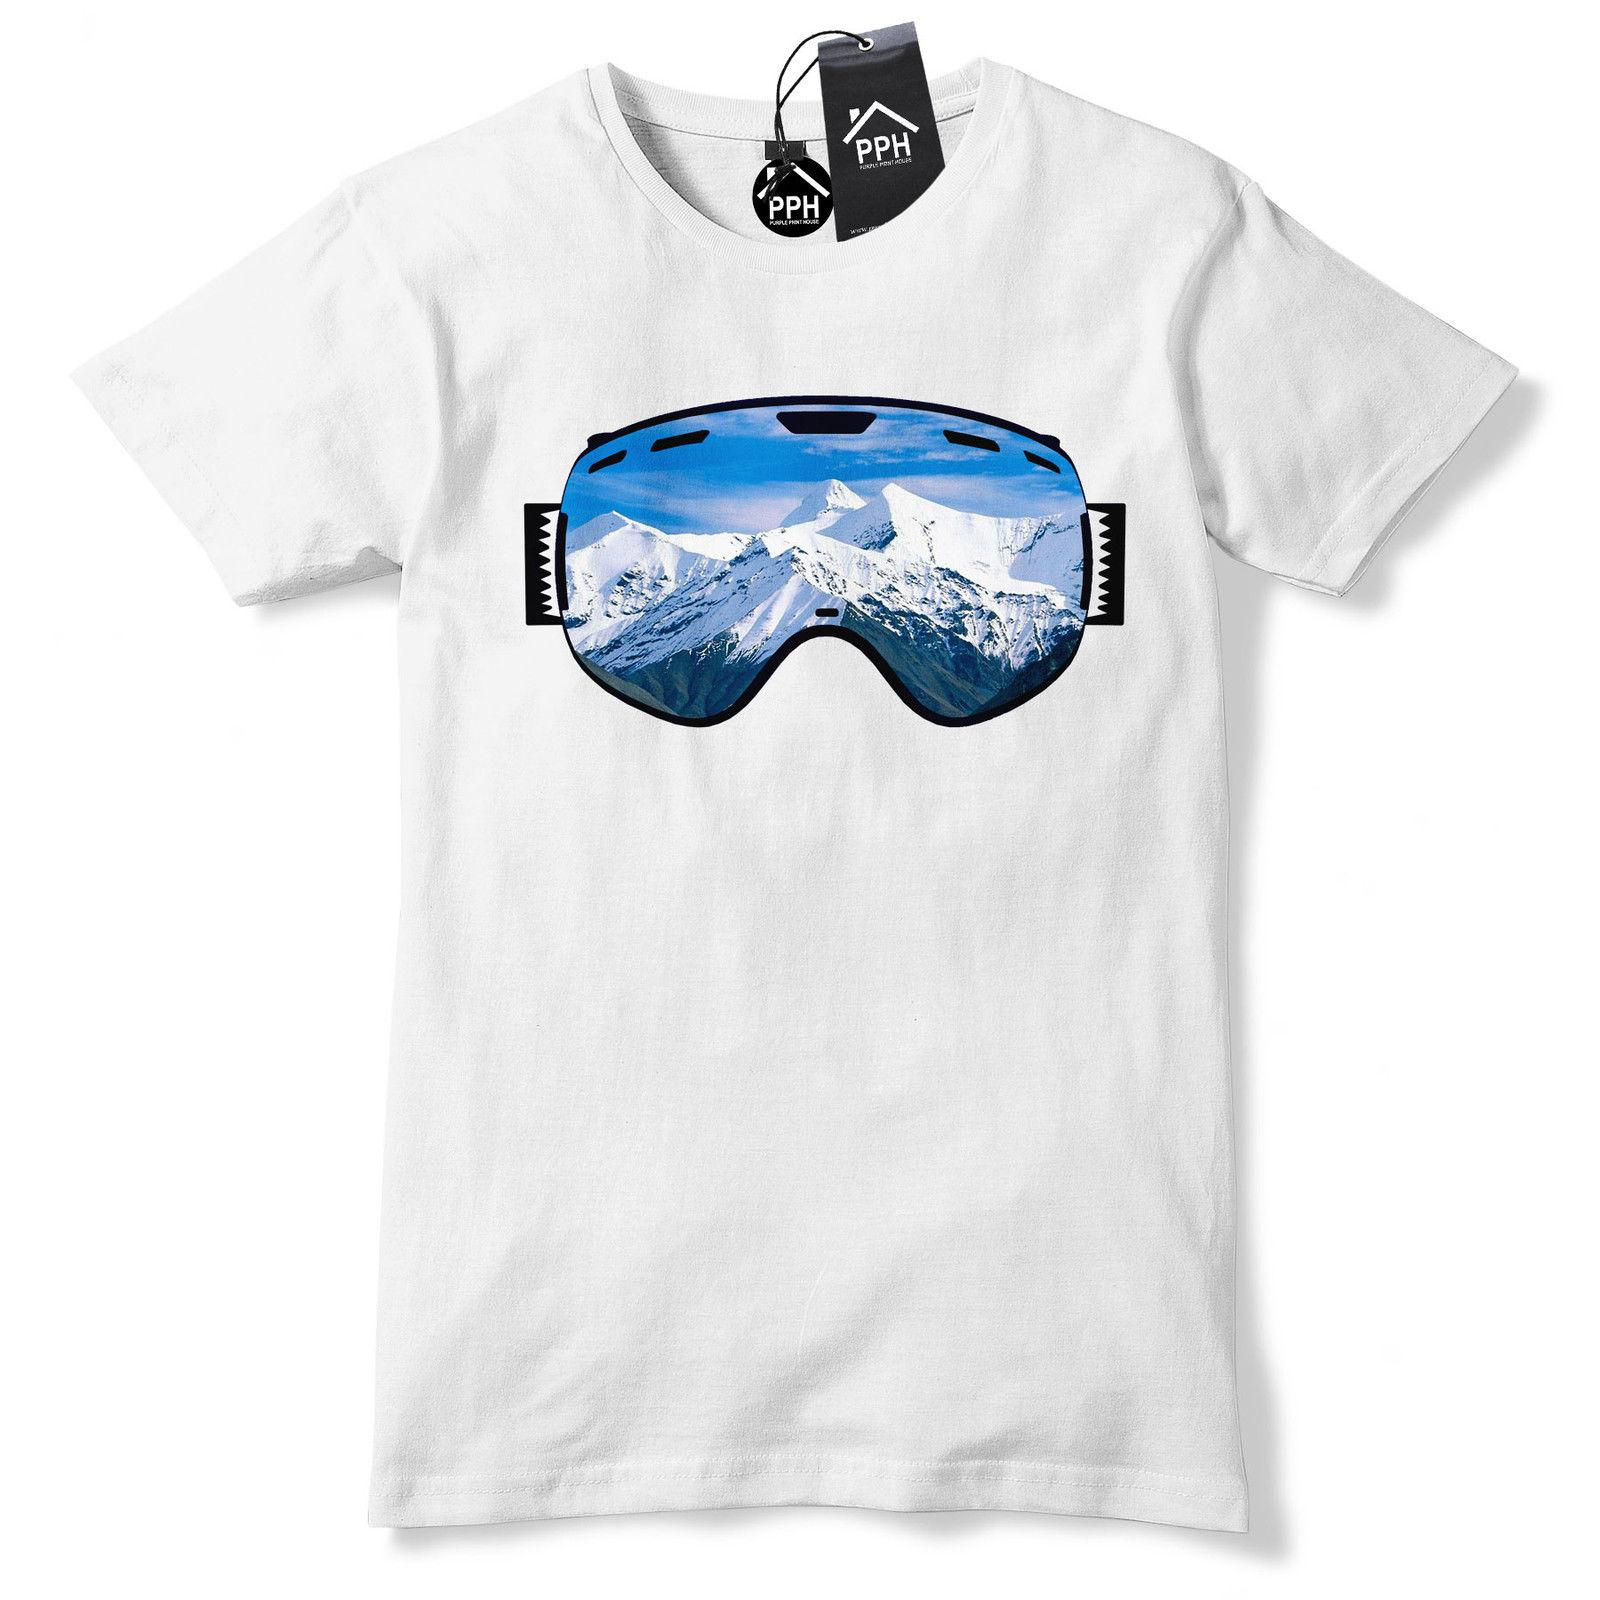 0f589f9985c0 Ski Goggles Mountain View T Shirt Mens Womens Kids Skiing Top Snowboard  Gift 488 Hoodie Hip Hop T Shirt But T Shirts T Shirts Funky From Docup